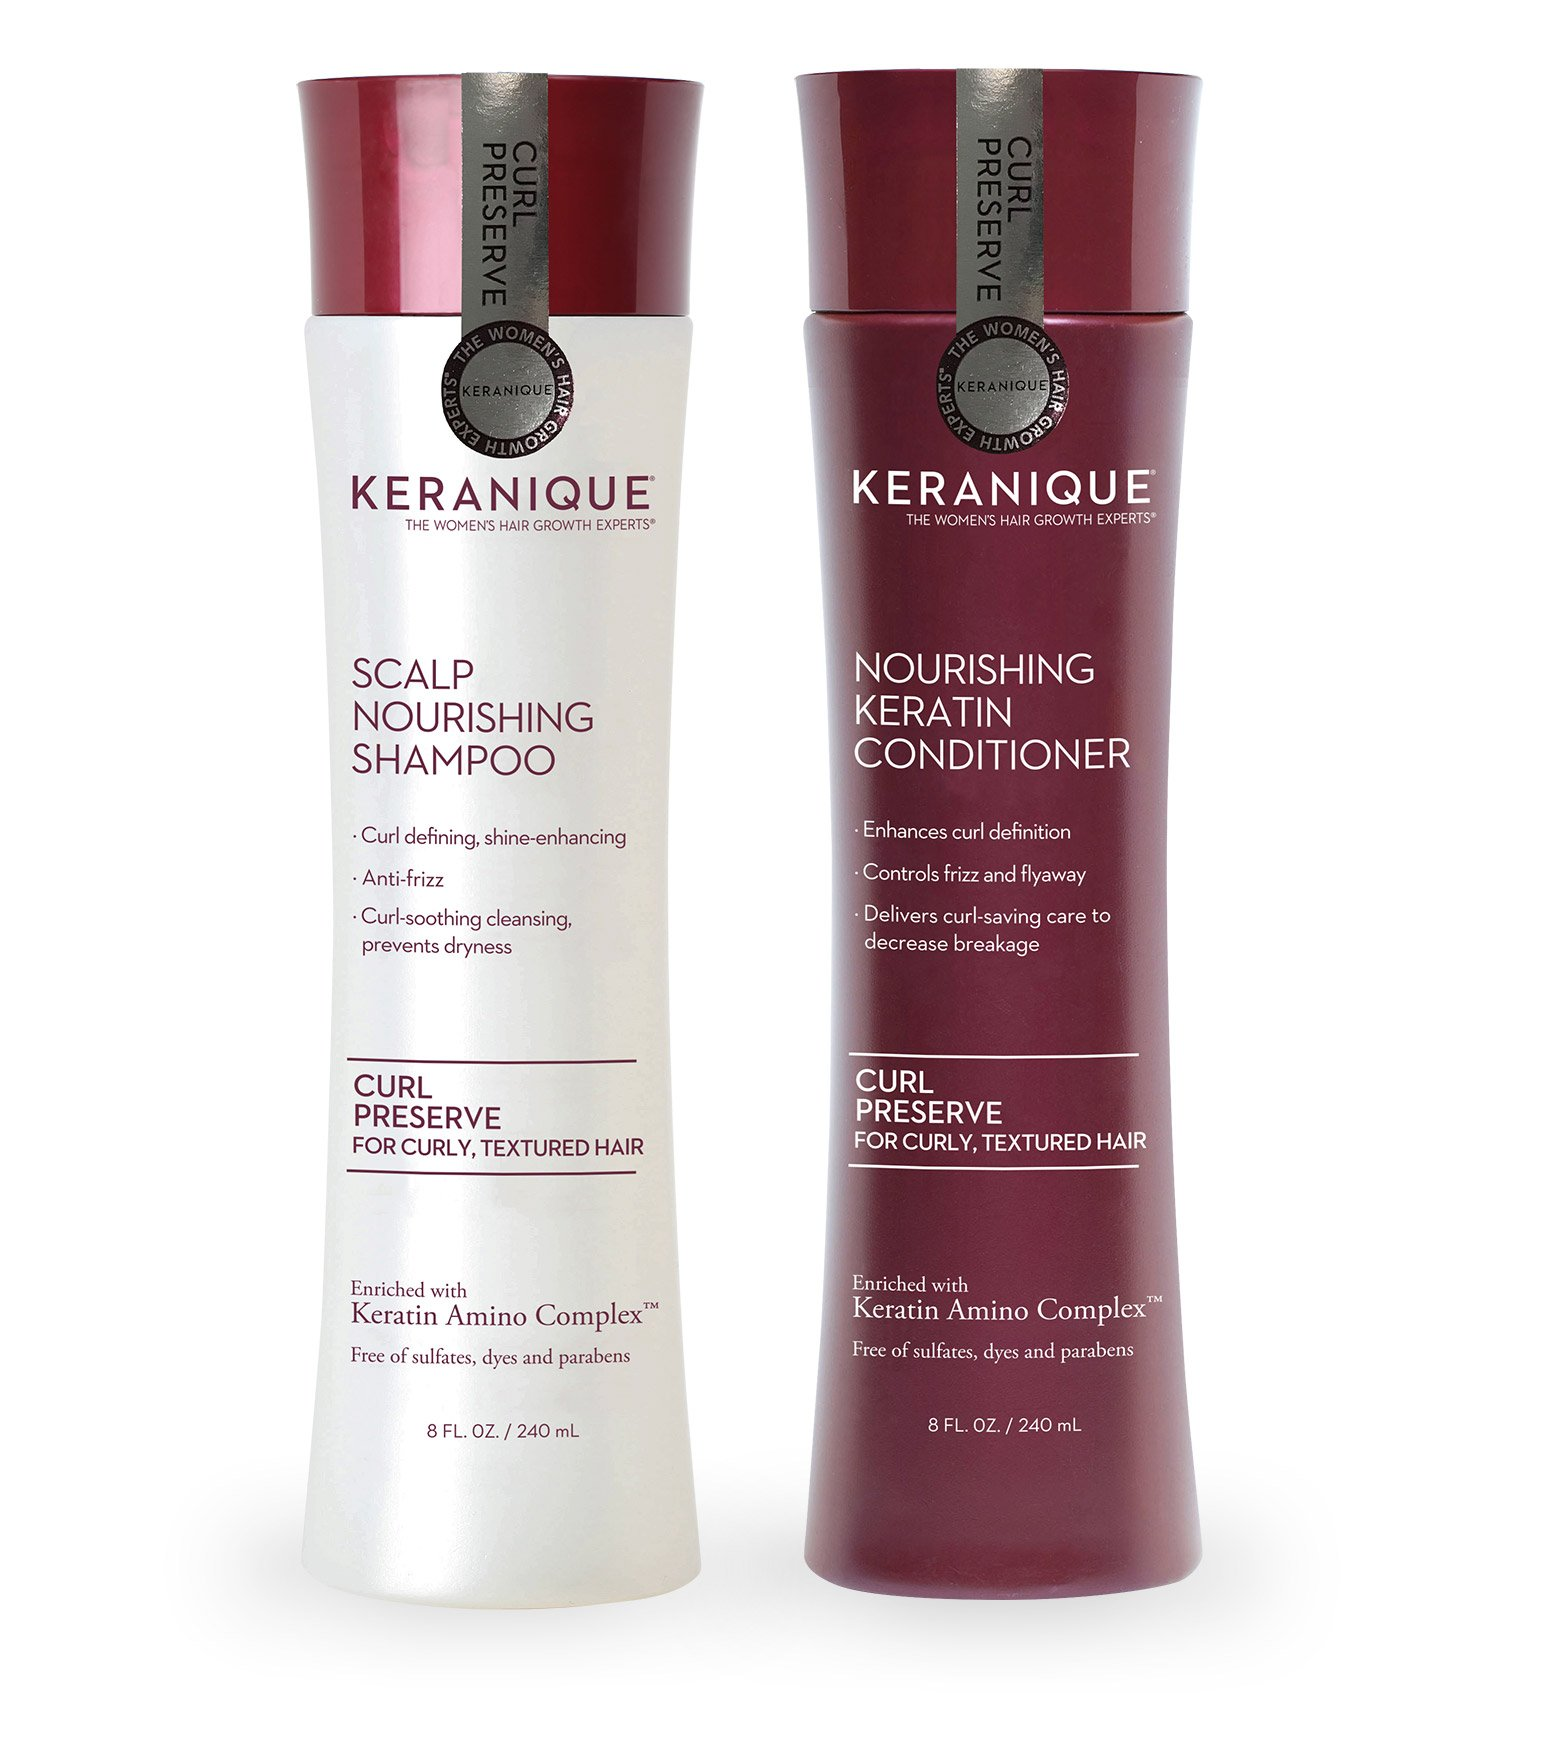 Keranique Curl Preserve Shampoo and Conditioner Duo Set for Curly, Textured Hair - Sulfate Free, Paraben Free, Anti Breakage 8 fl oz. by Keranique